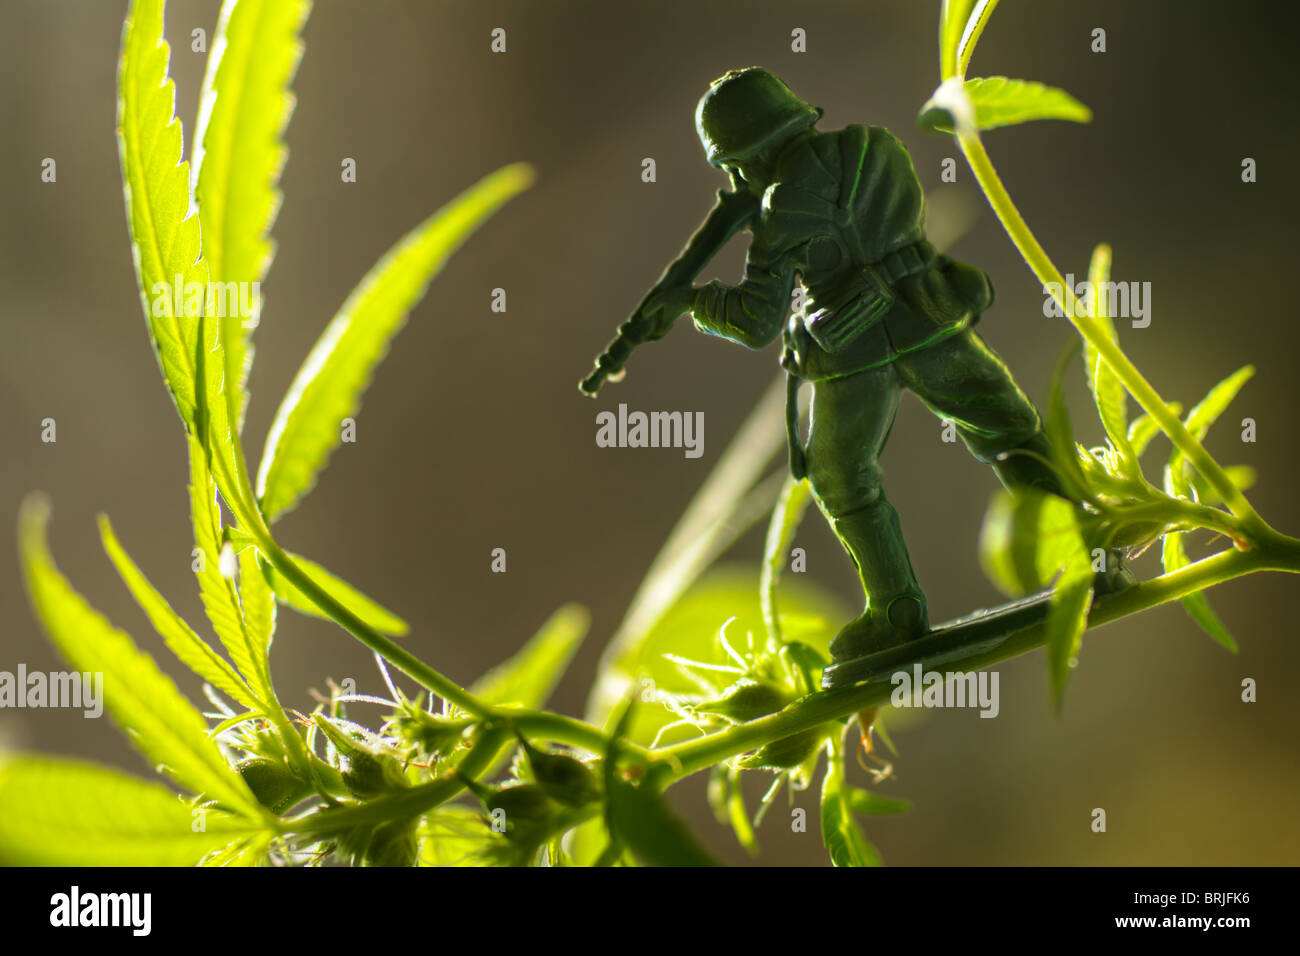 War against nature; toy soldier aiming at a seed-bearing cannabis sativa plant - Stock Image